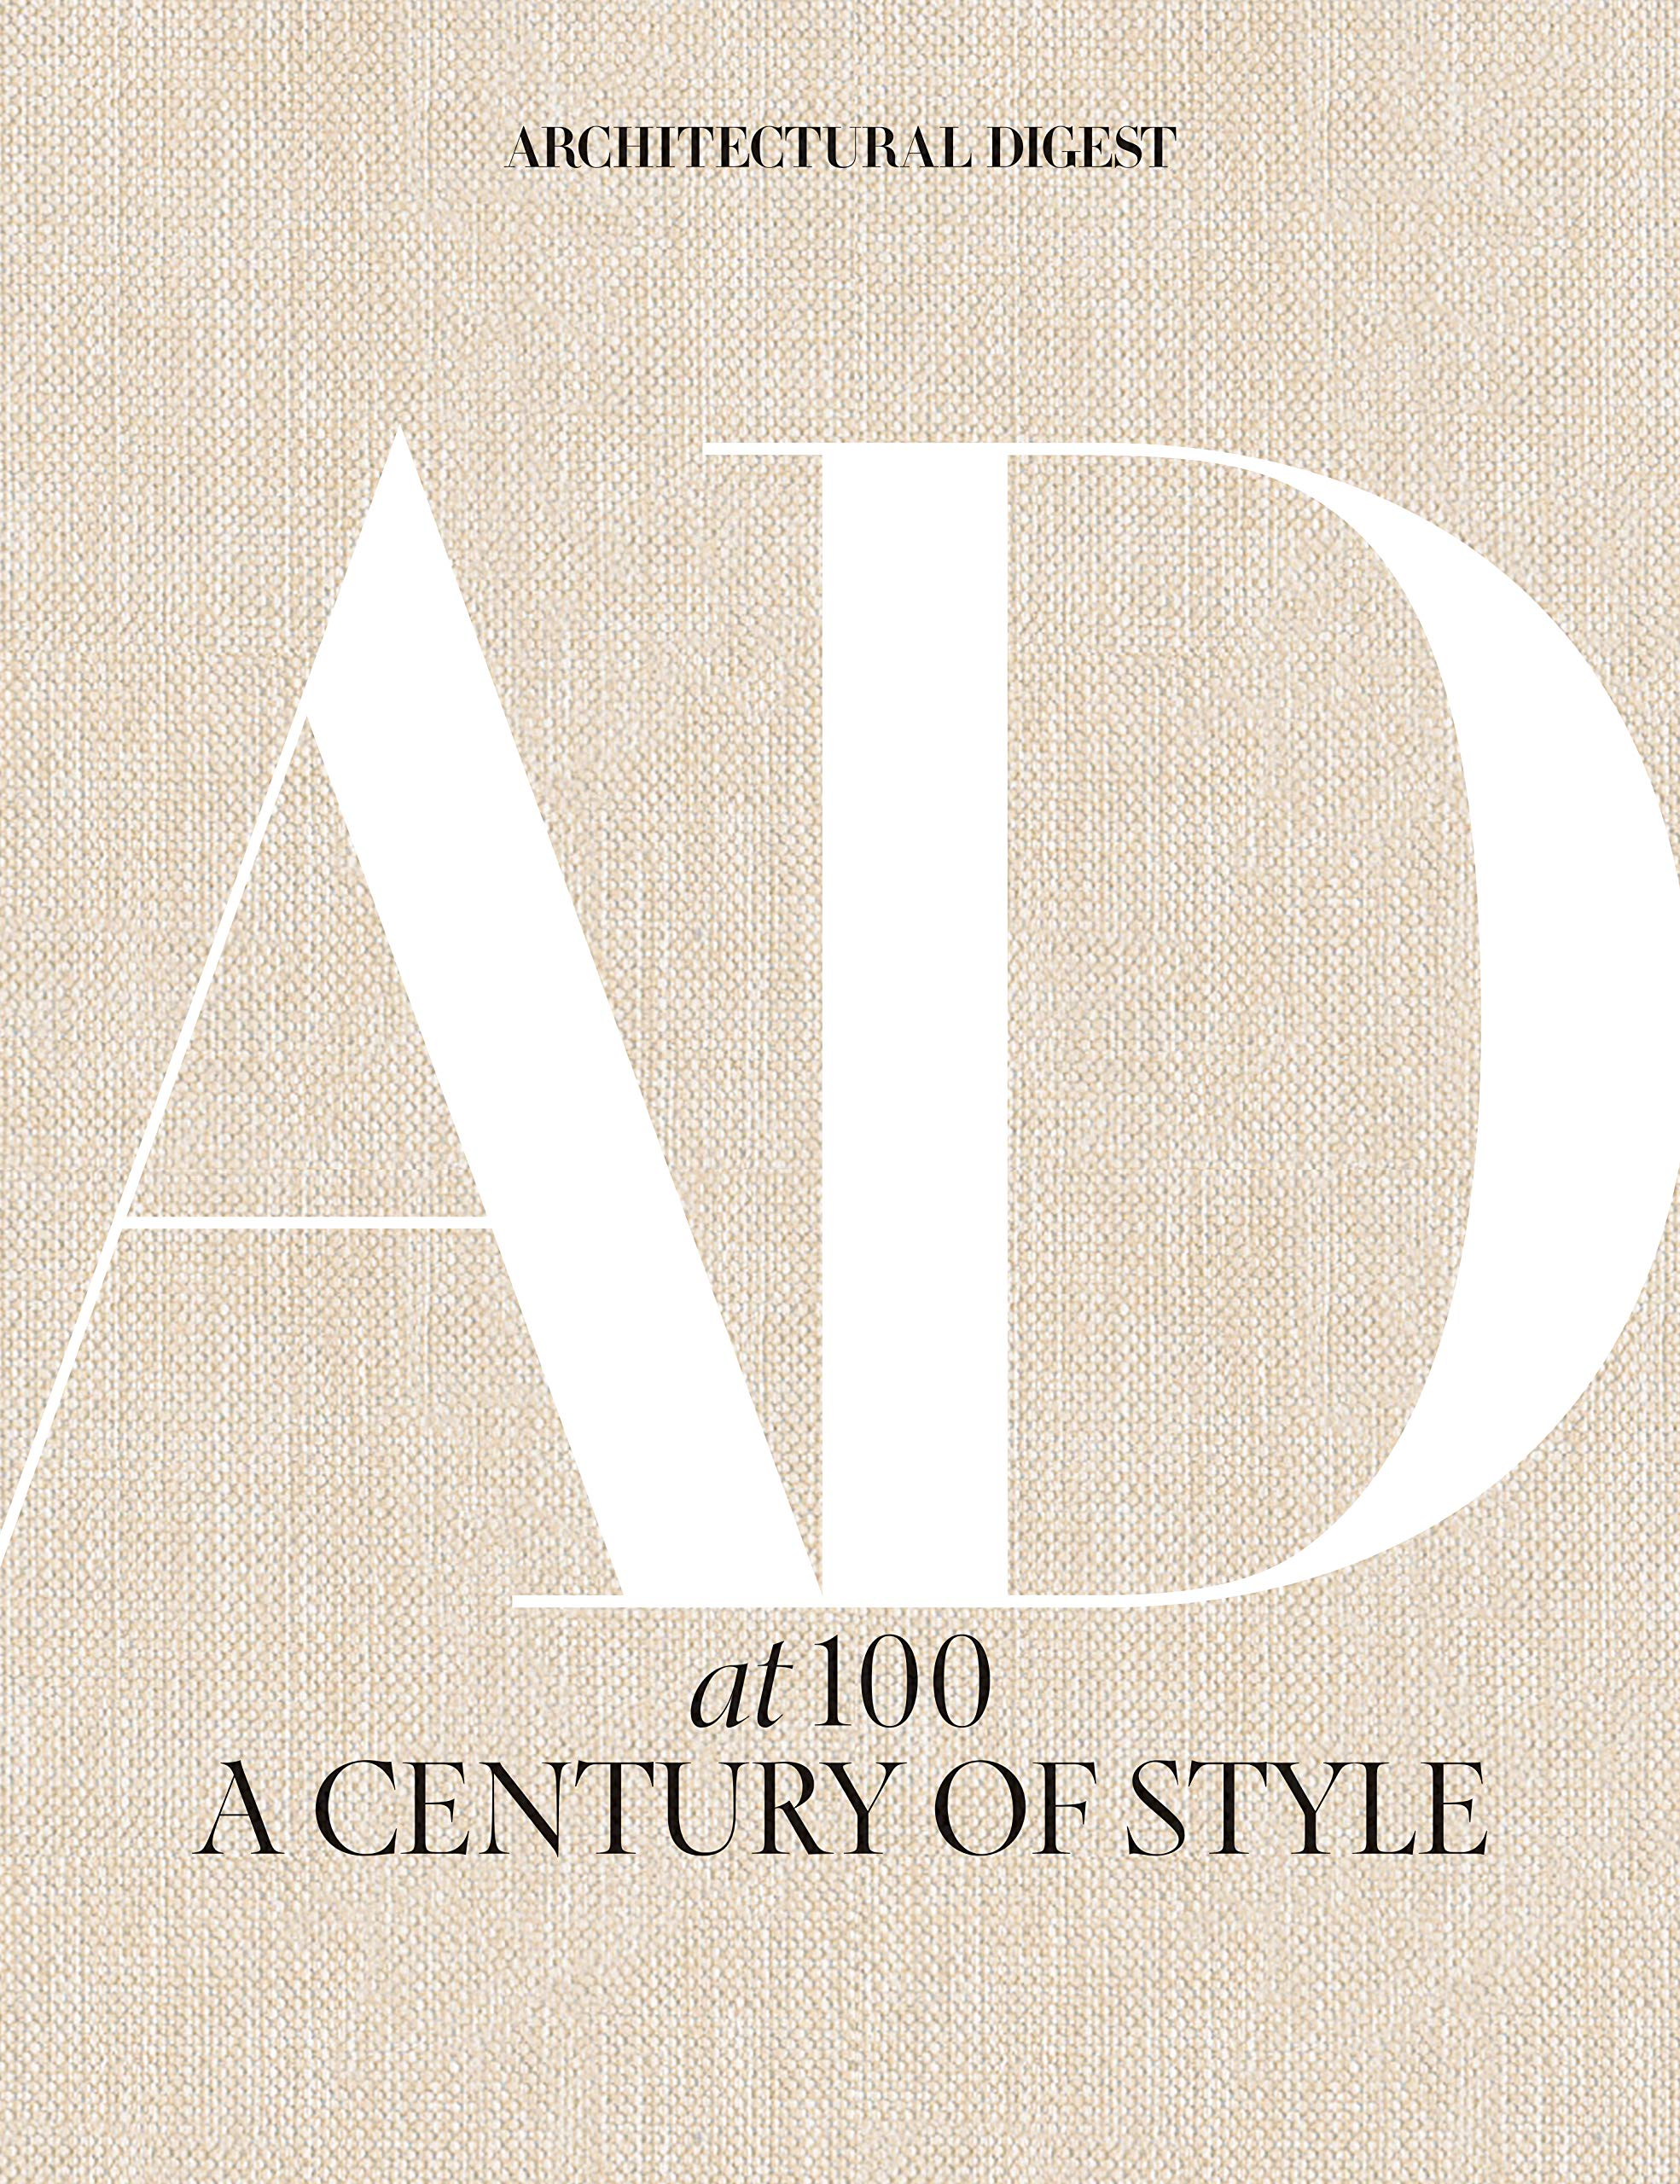 architectural digest at 100 - a century of style